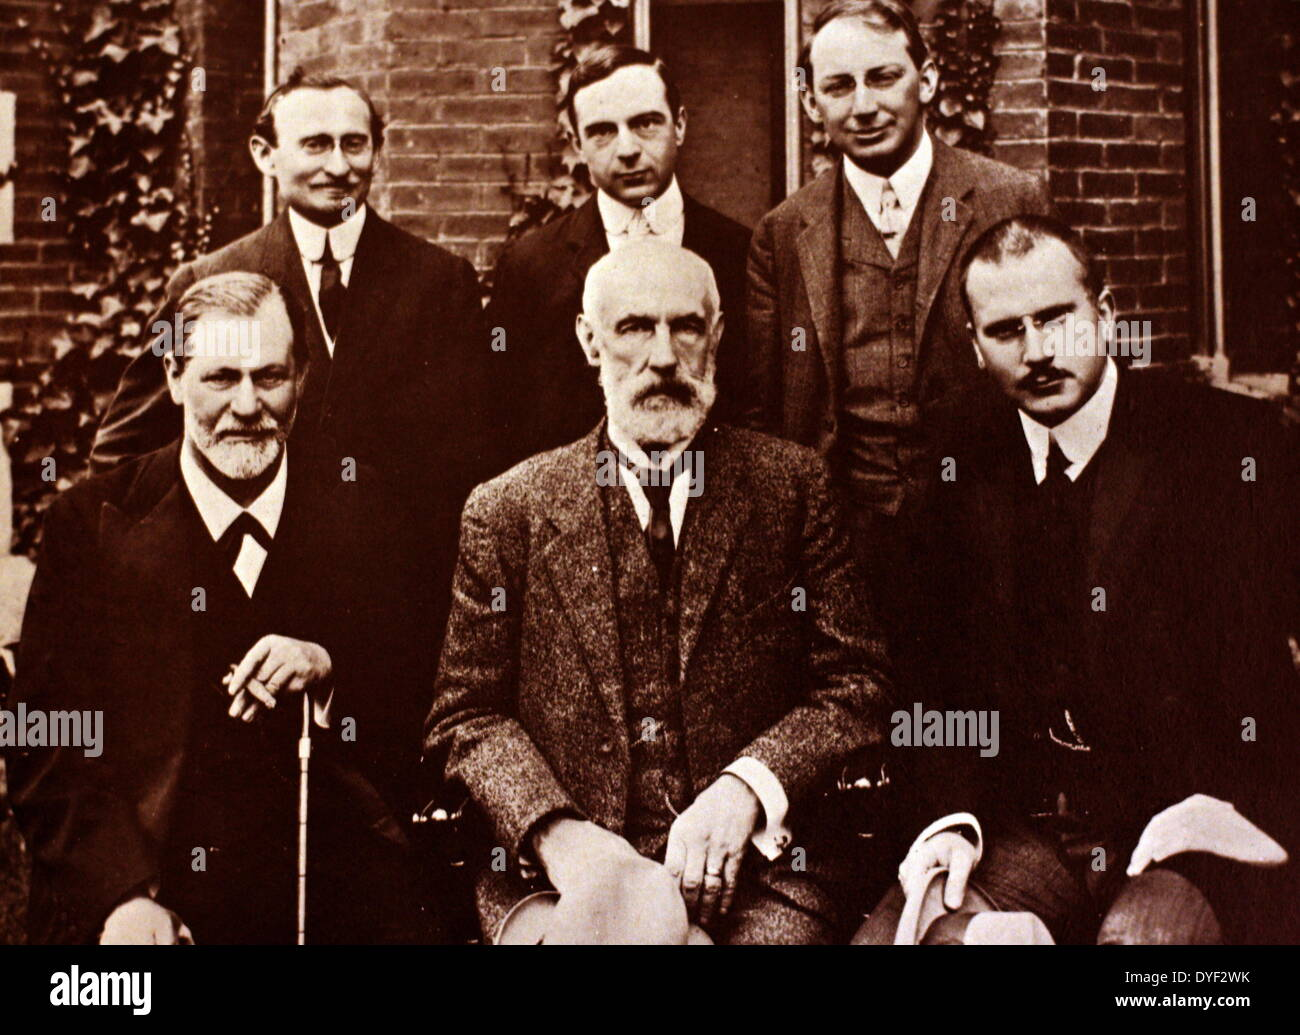 Photograph of Sigmund Freud, Carl Jung and Sándor Ferenczi along with other members of the growing world of psychoanalysis, in - Stock Image